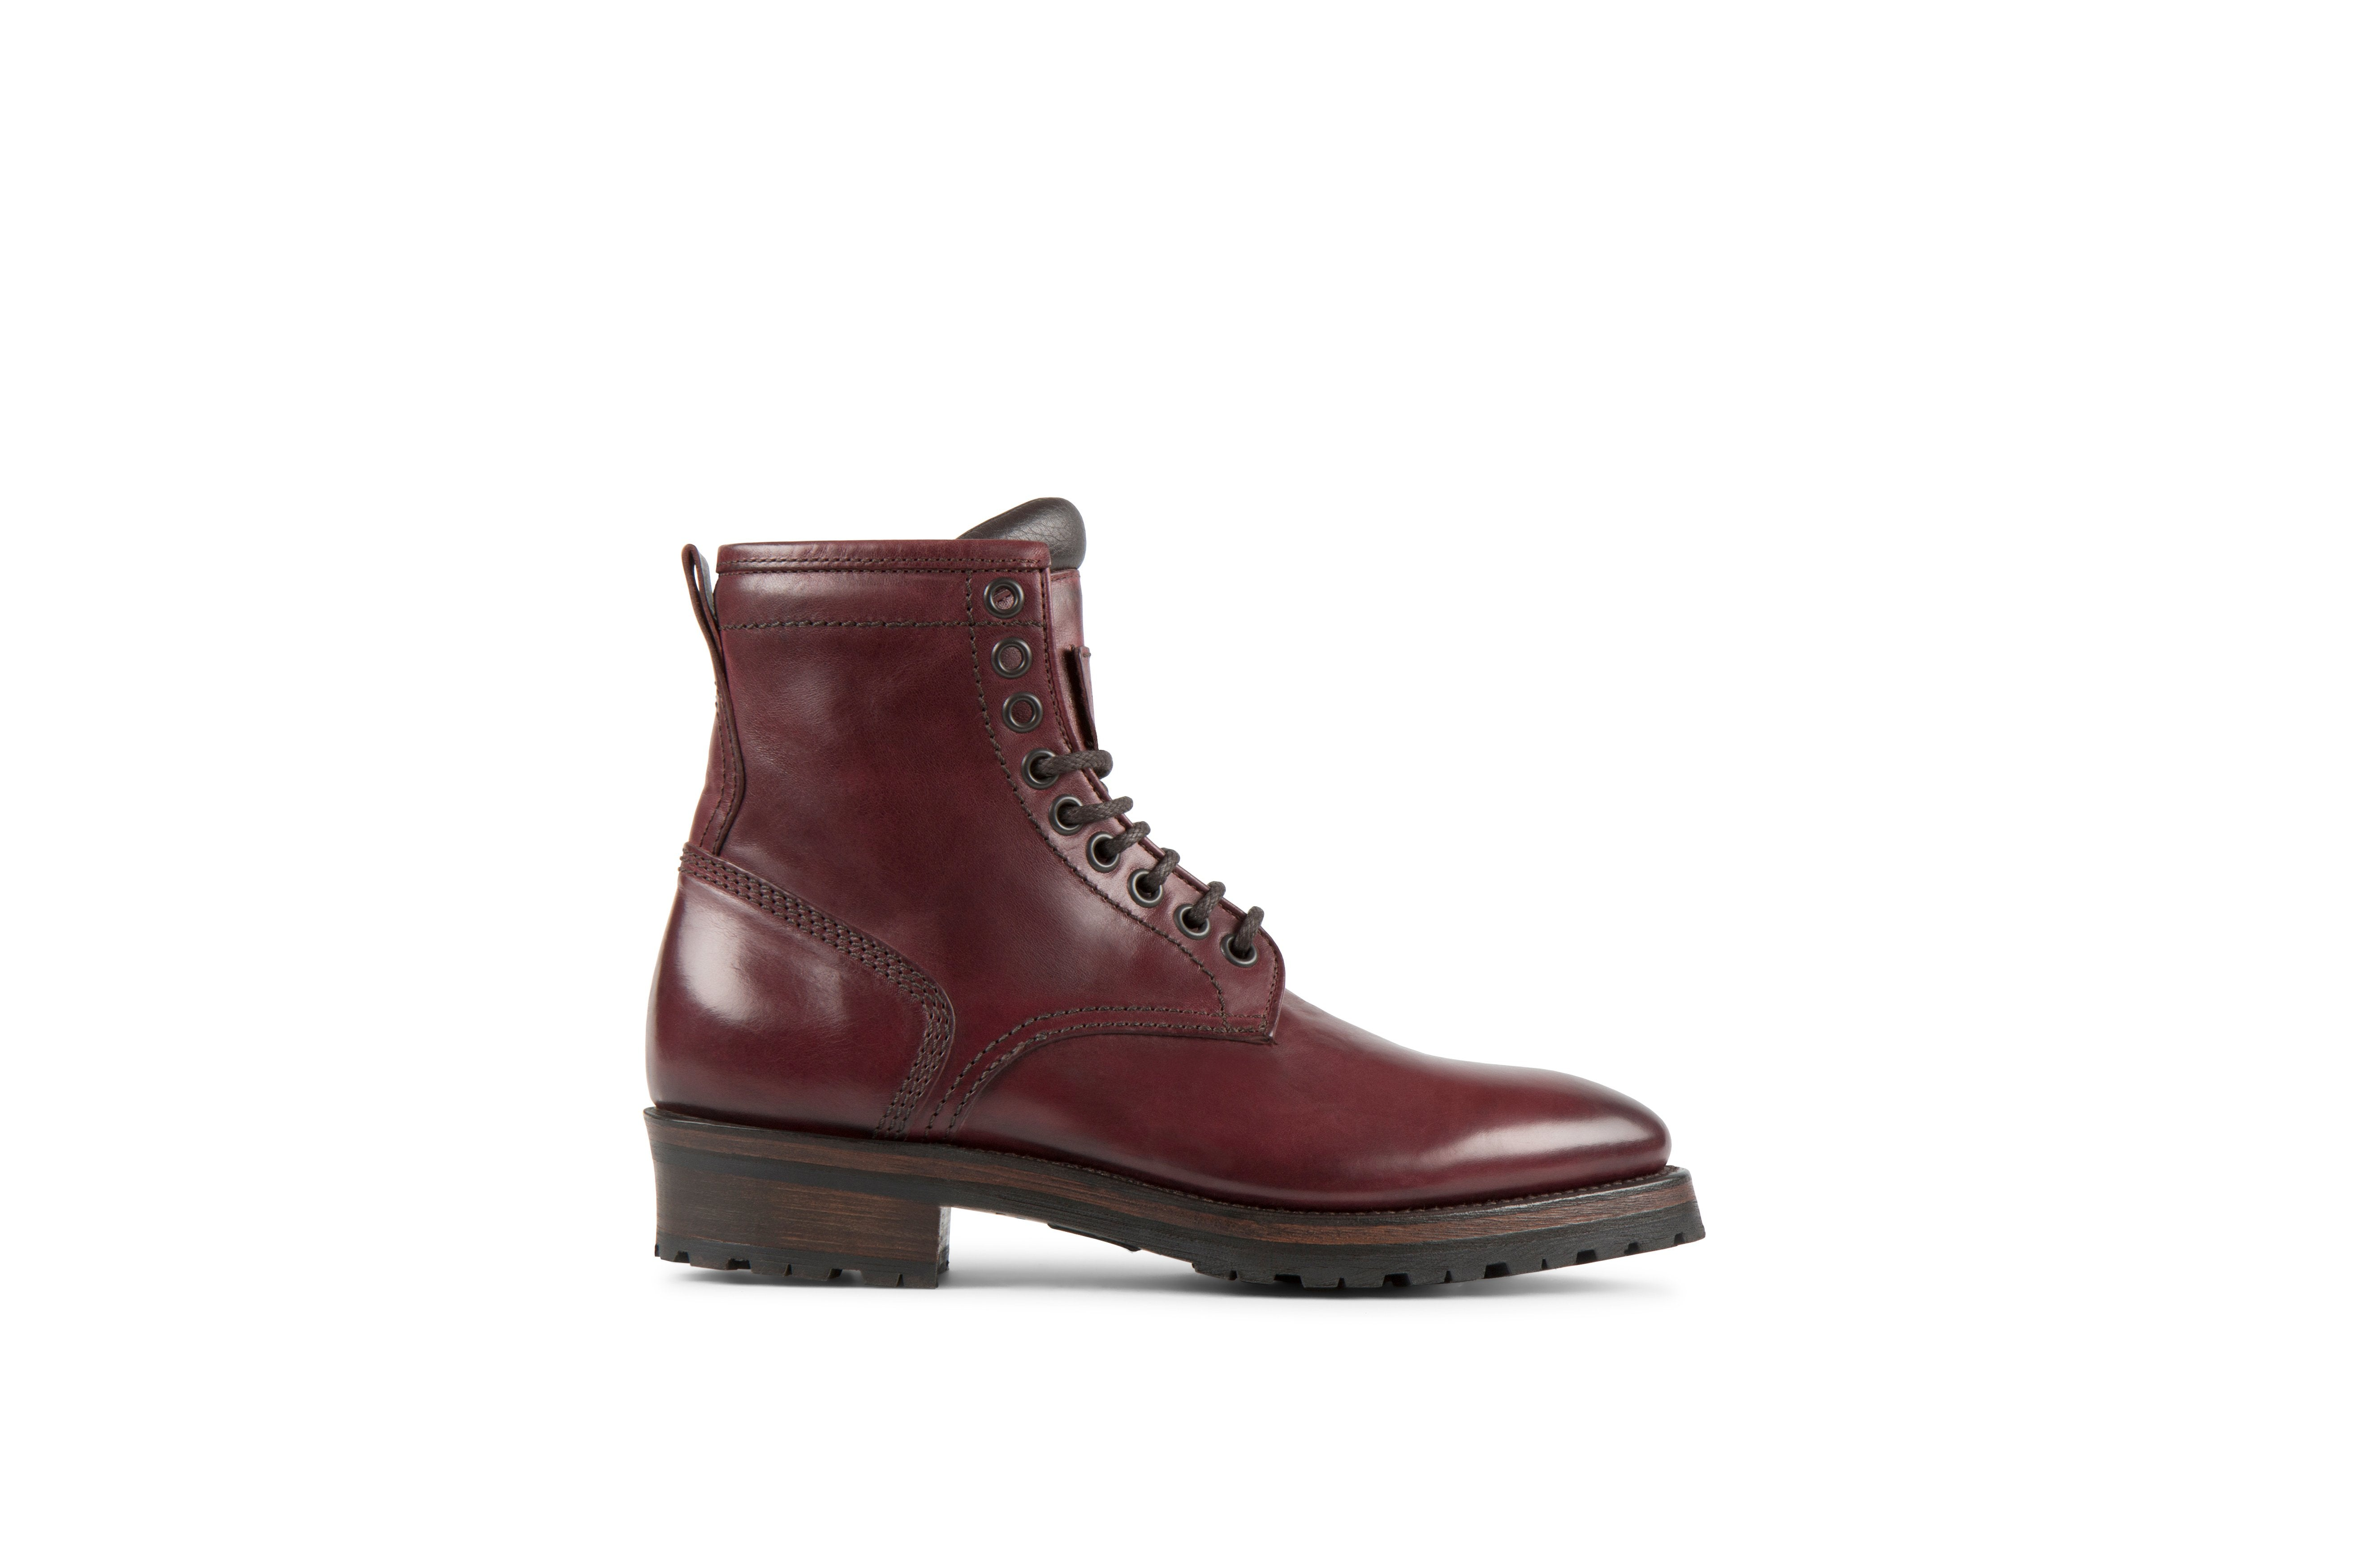 Royal Burgundy Cordovan Leather Logger Boots